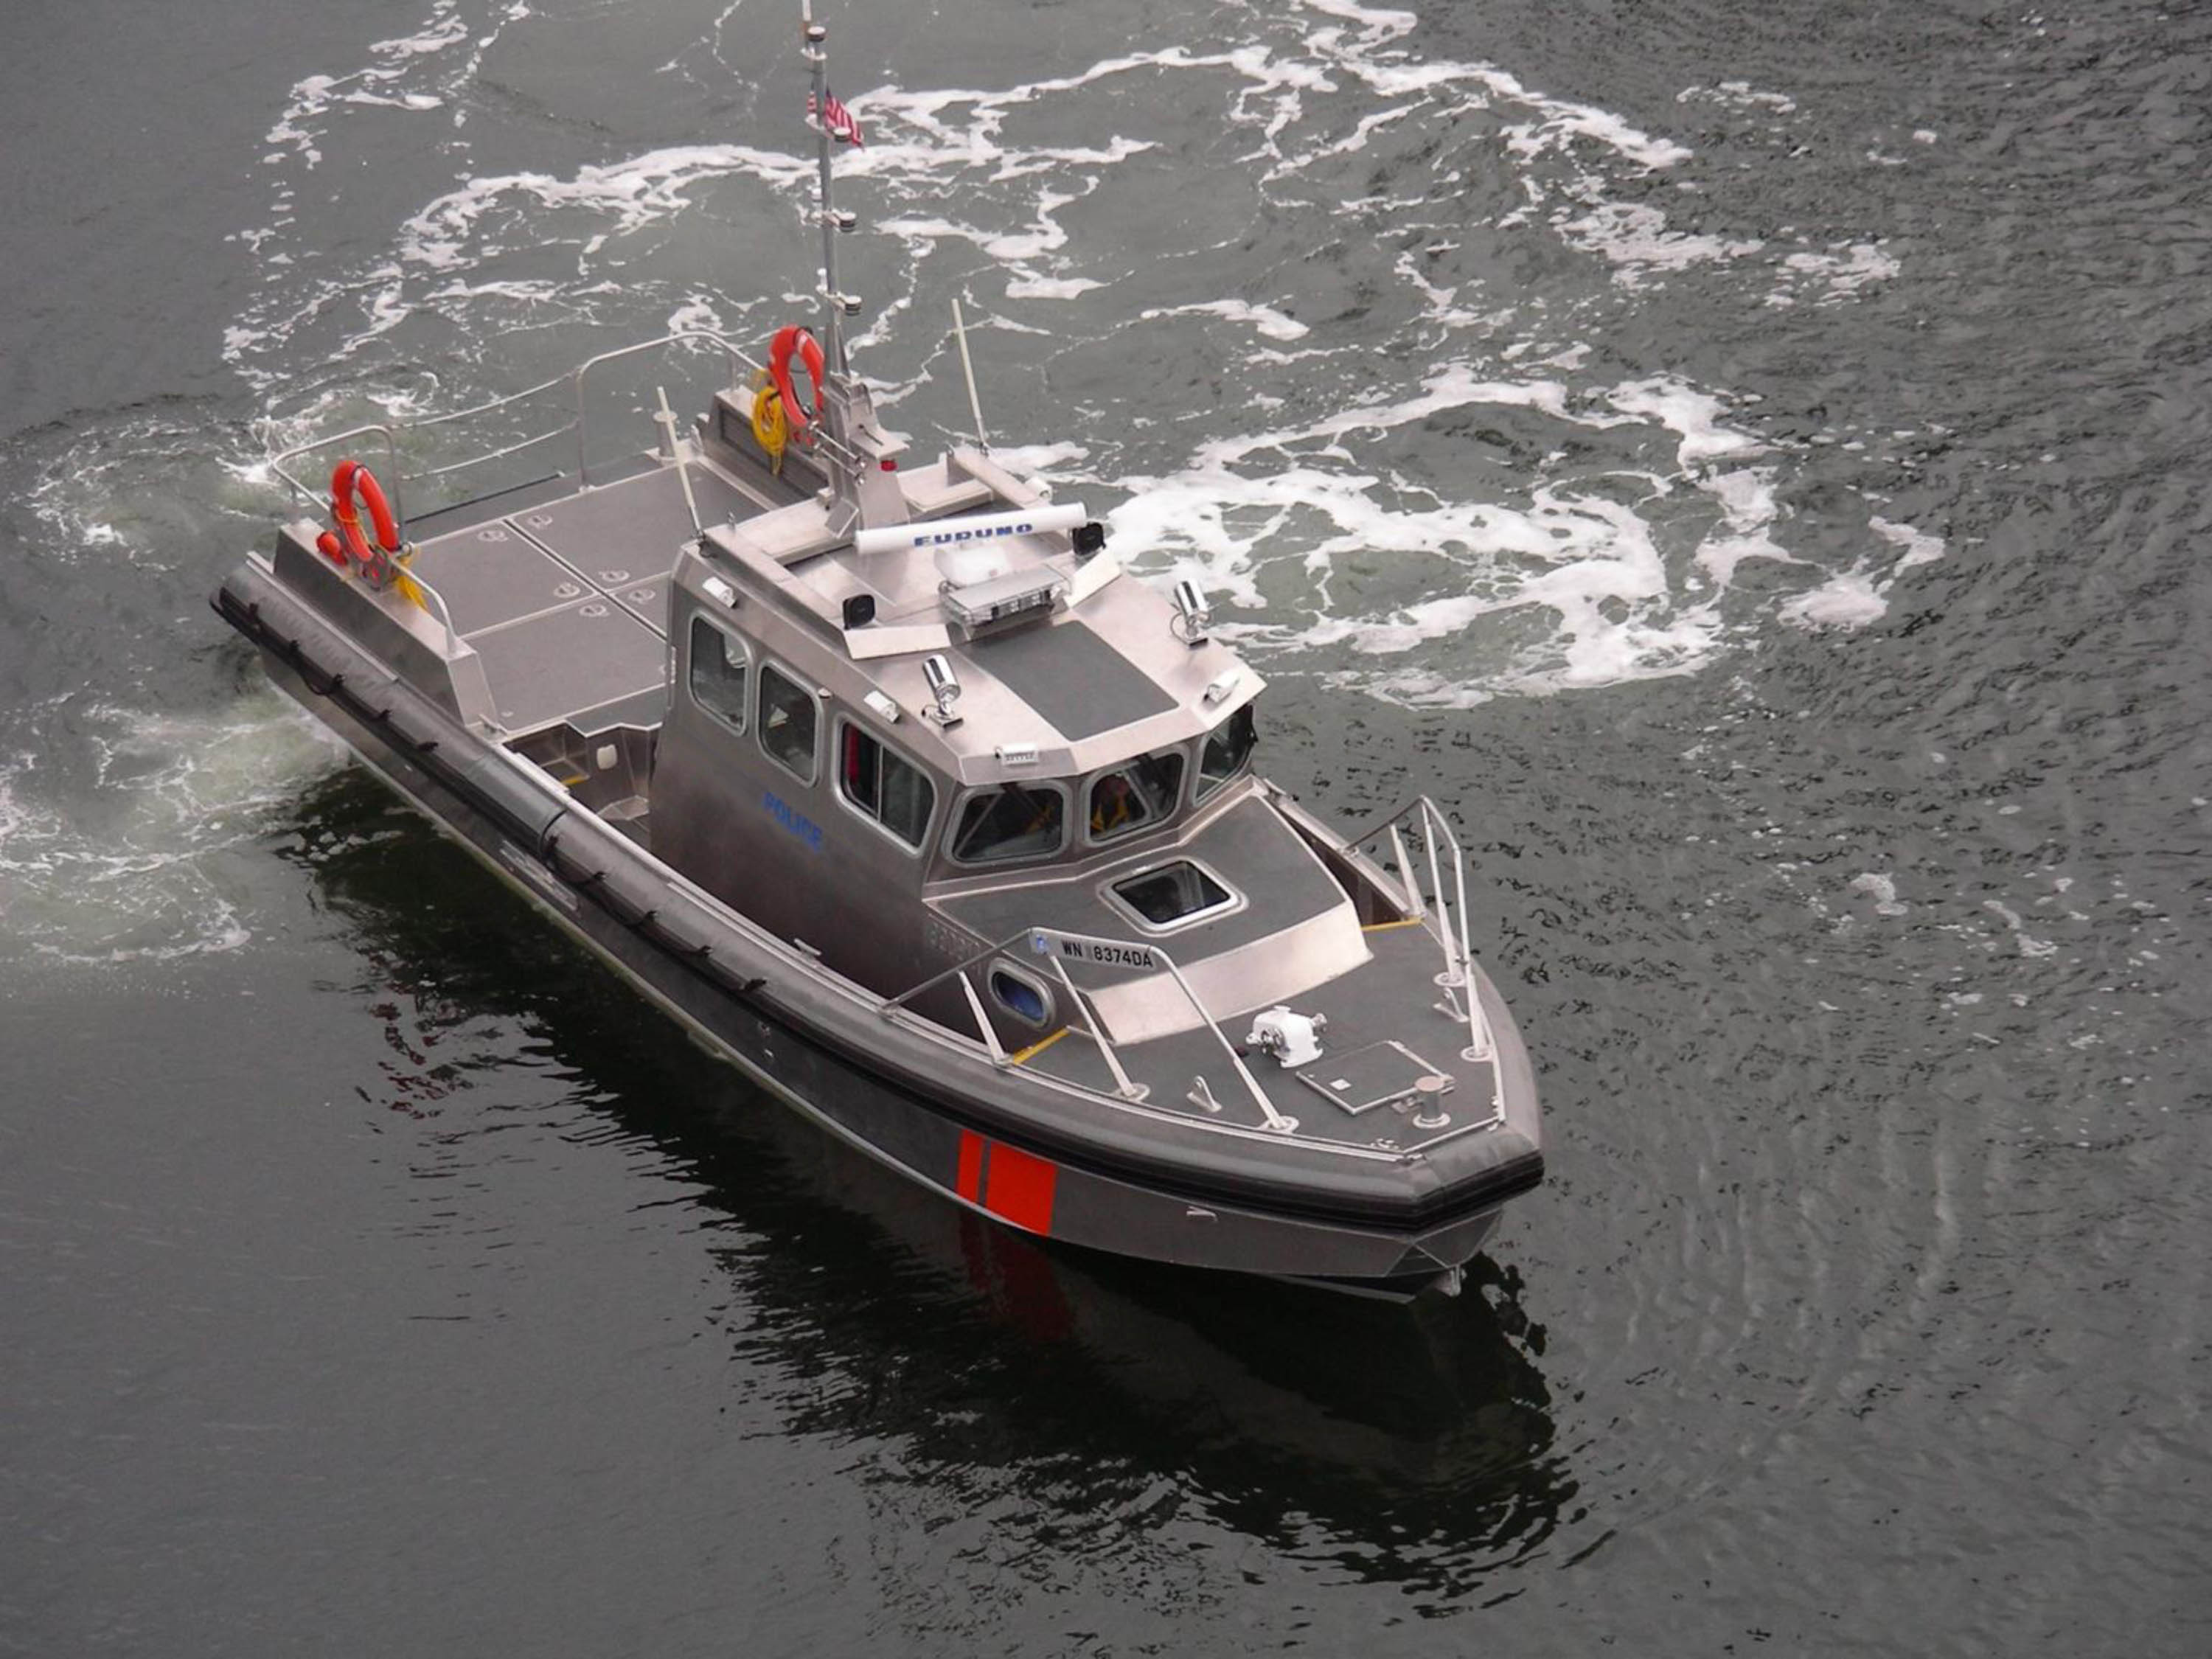 police boat - photos -21